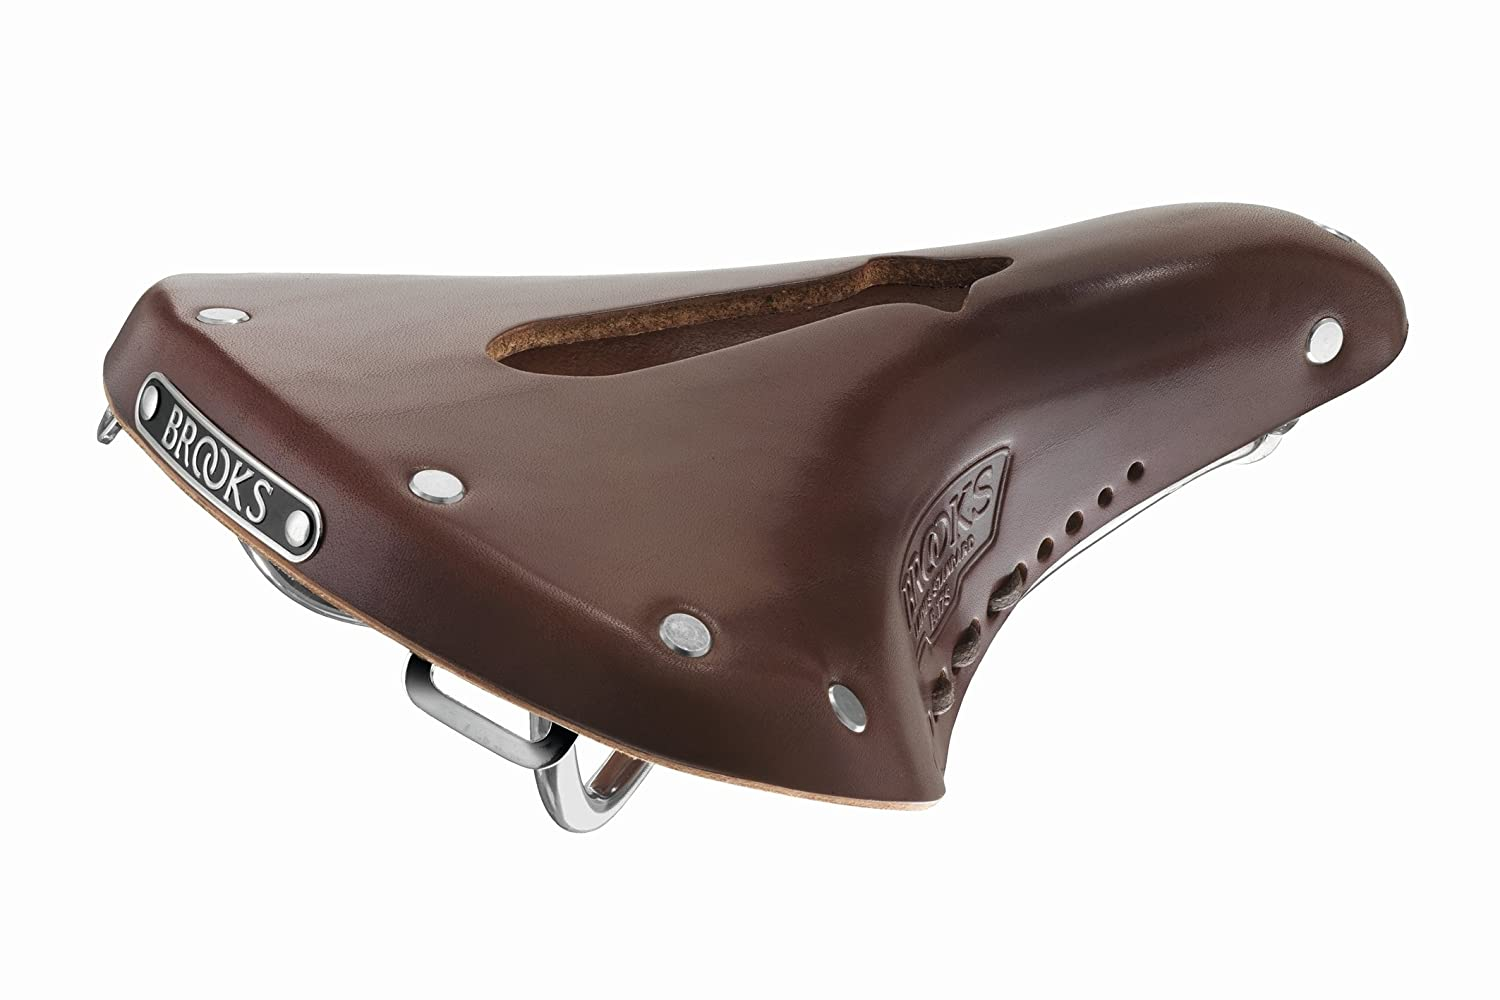 BROOKS B17 Standard Imperial Trekking and Touring Bicycle Saddle Brown